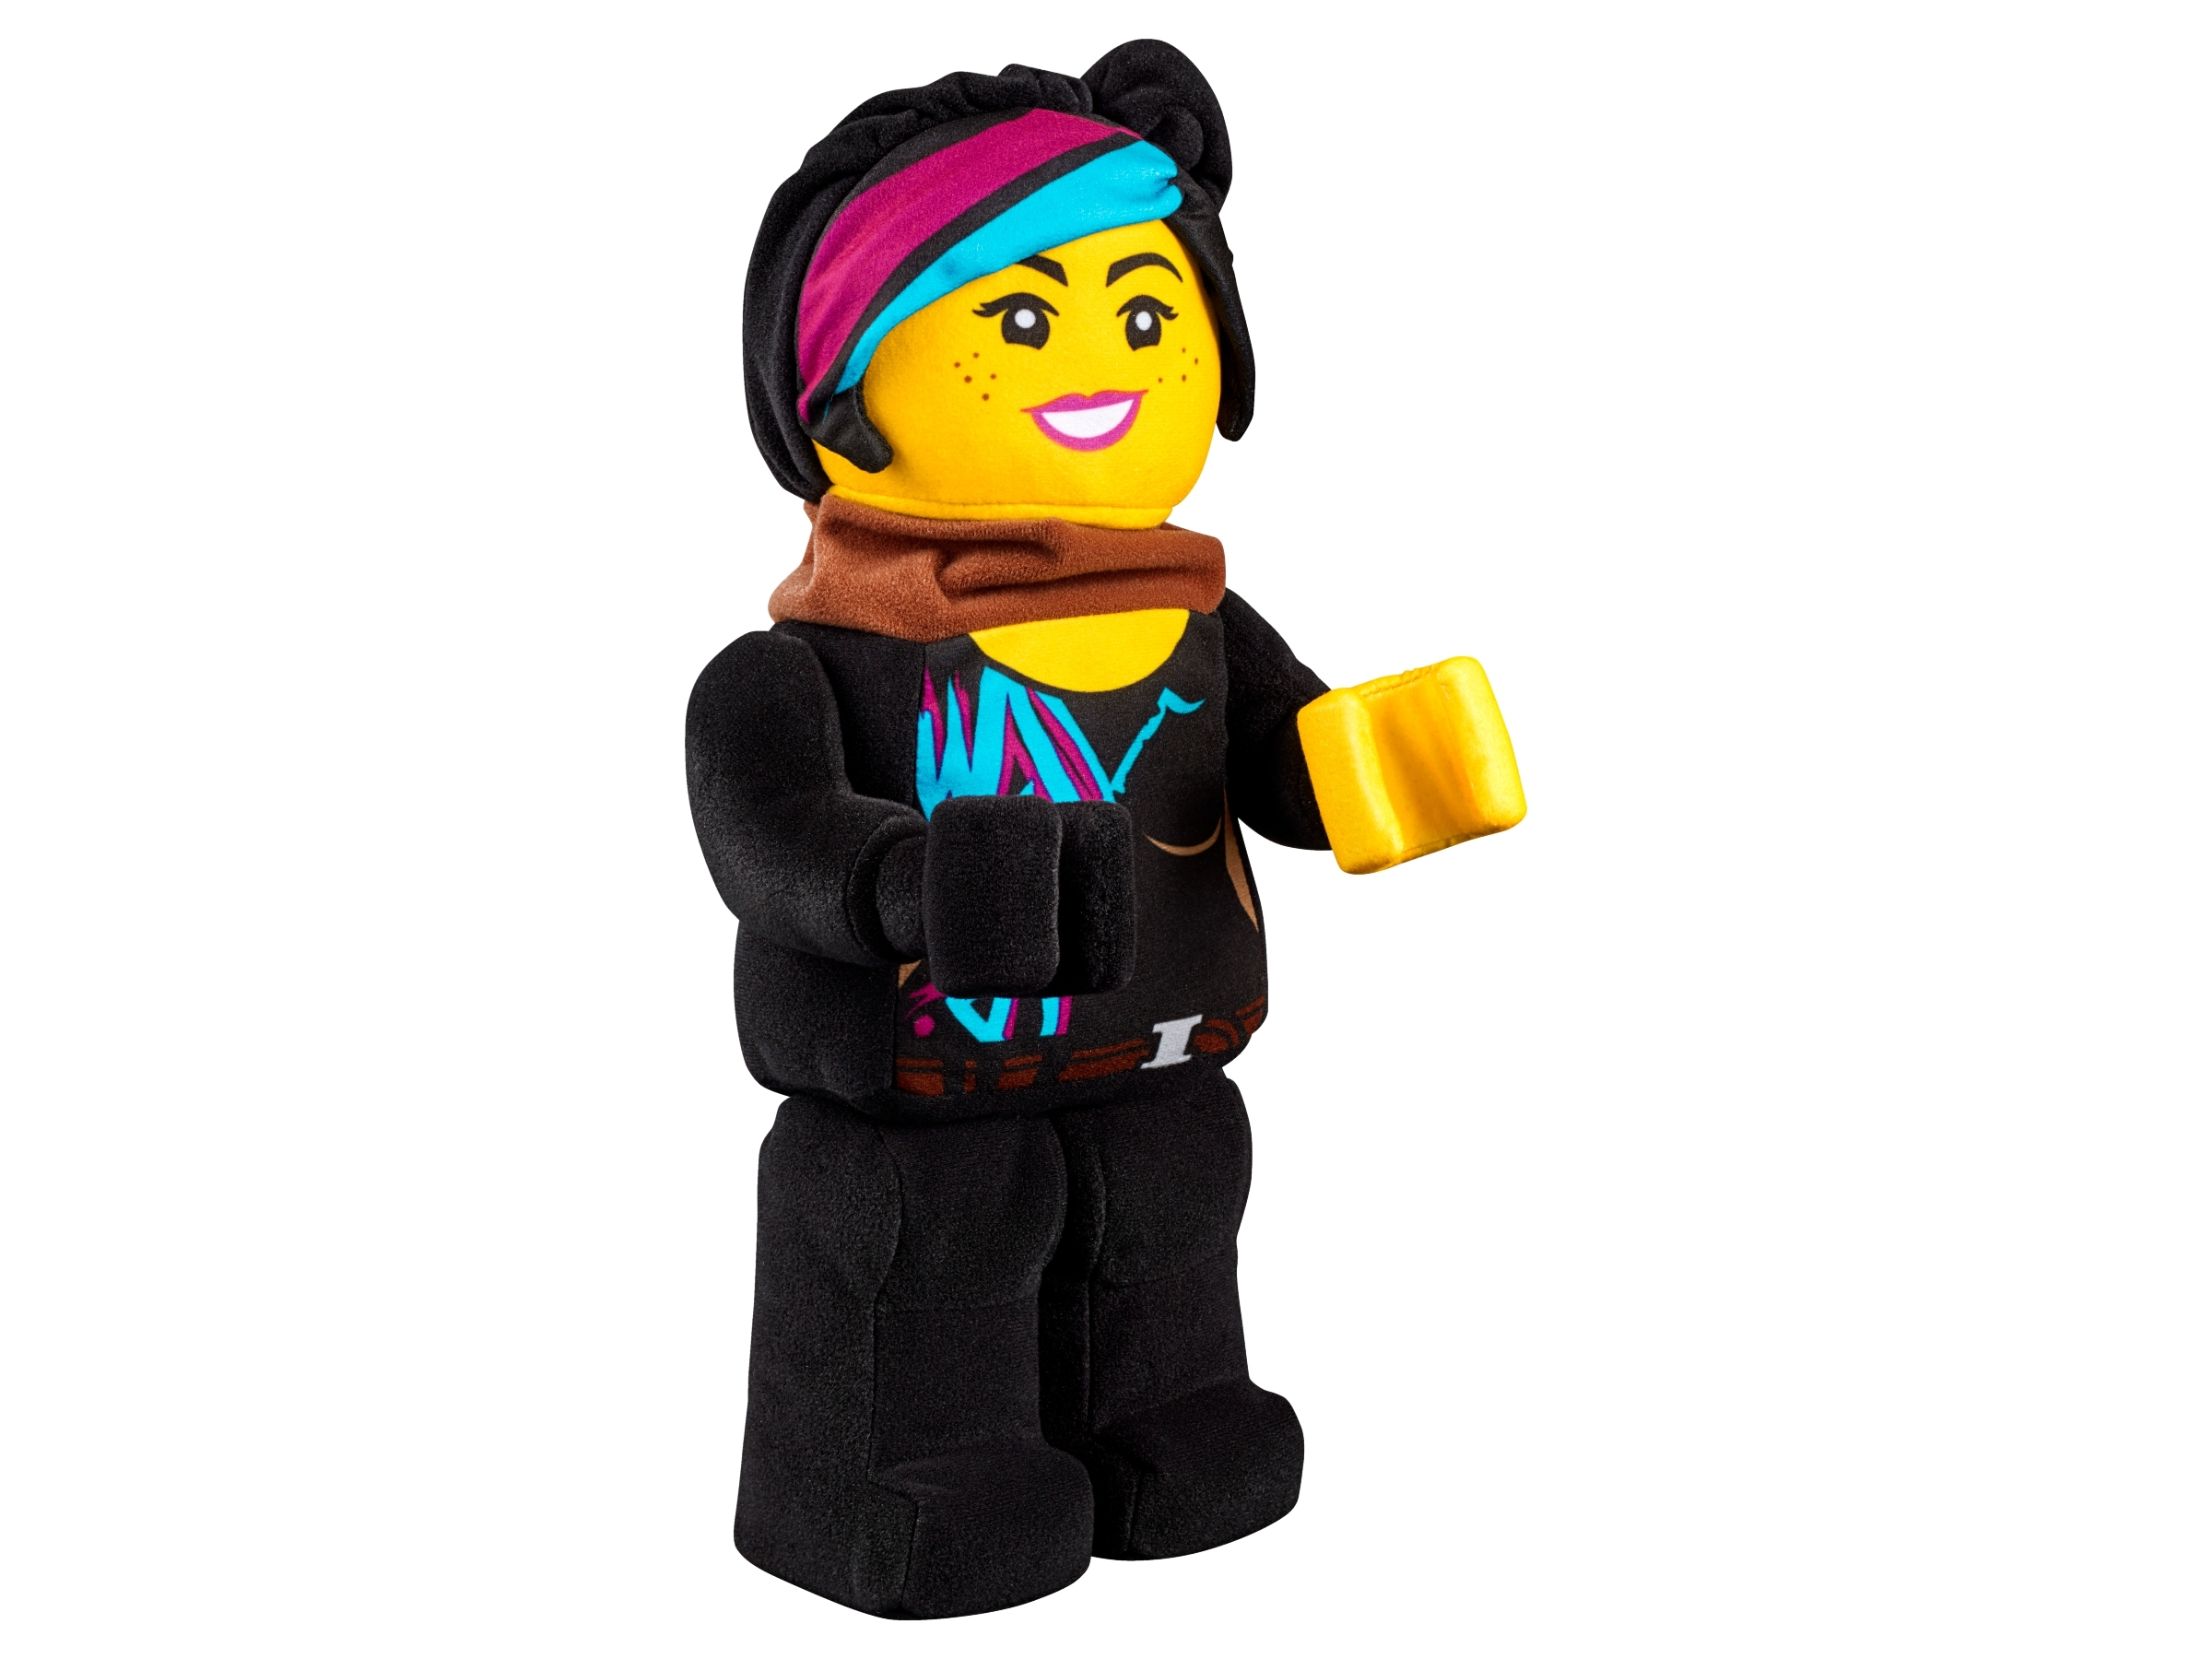 Lucy Plush 853880 The Lego Movie 2 Buy Online At The Official Lego Shop Us